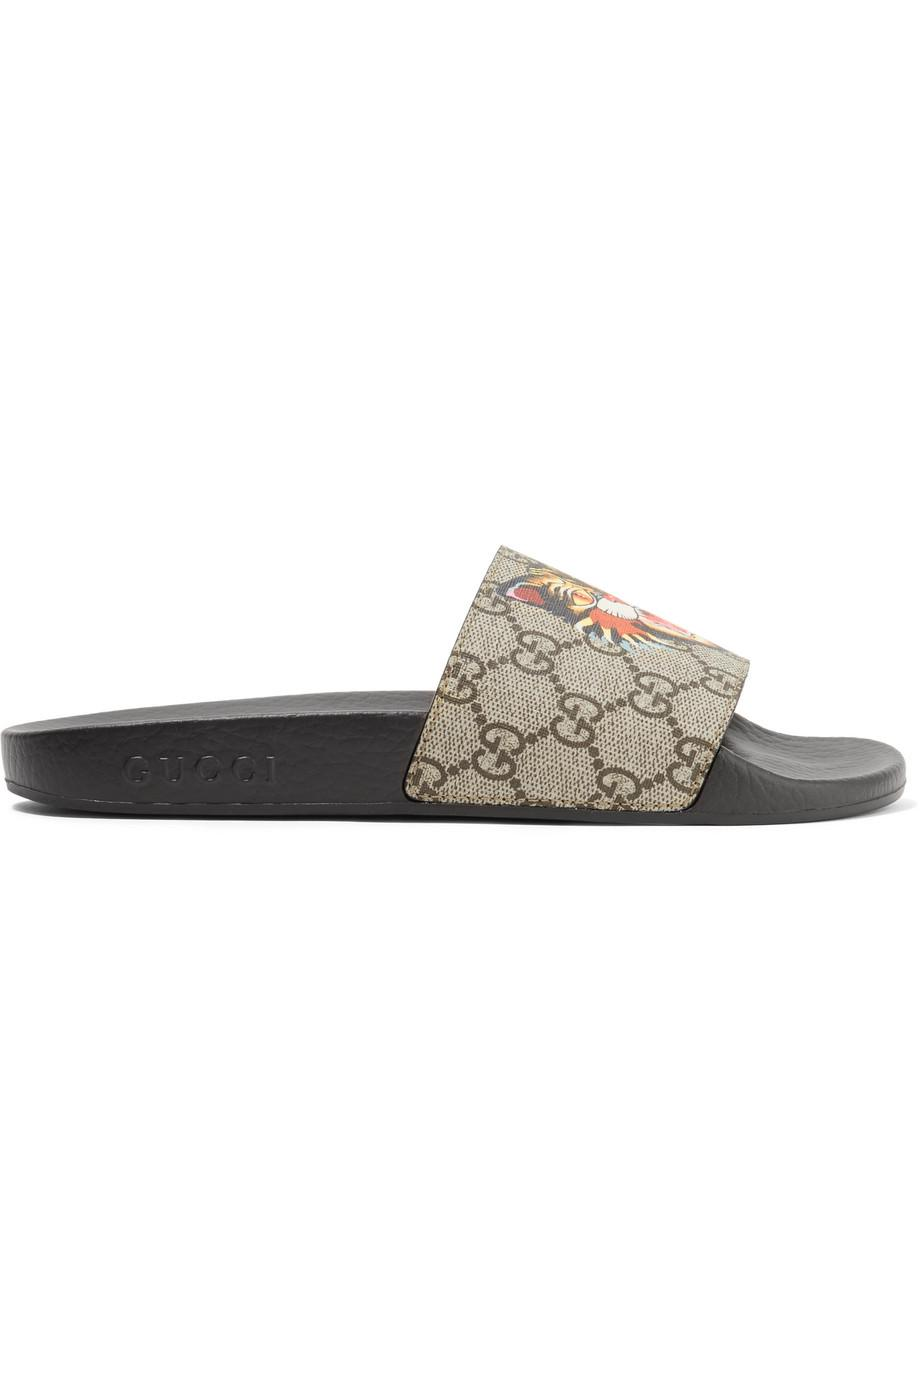 bd11e1516b3 Lyst - Gucci Printed Coated-canvas Slides